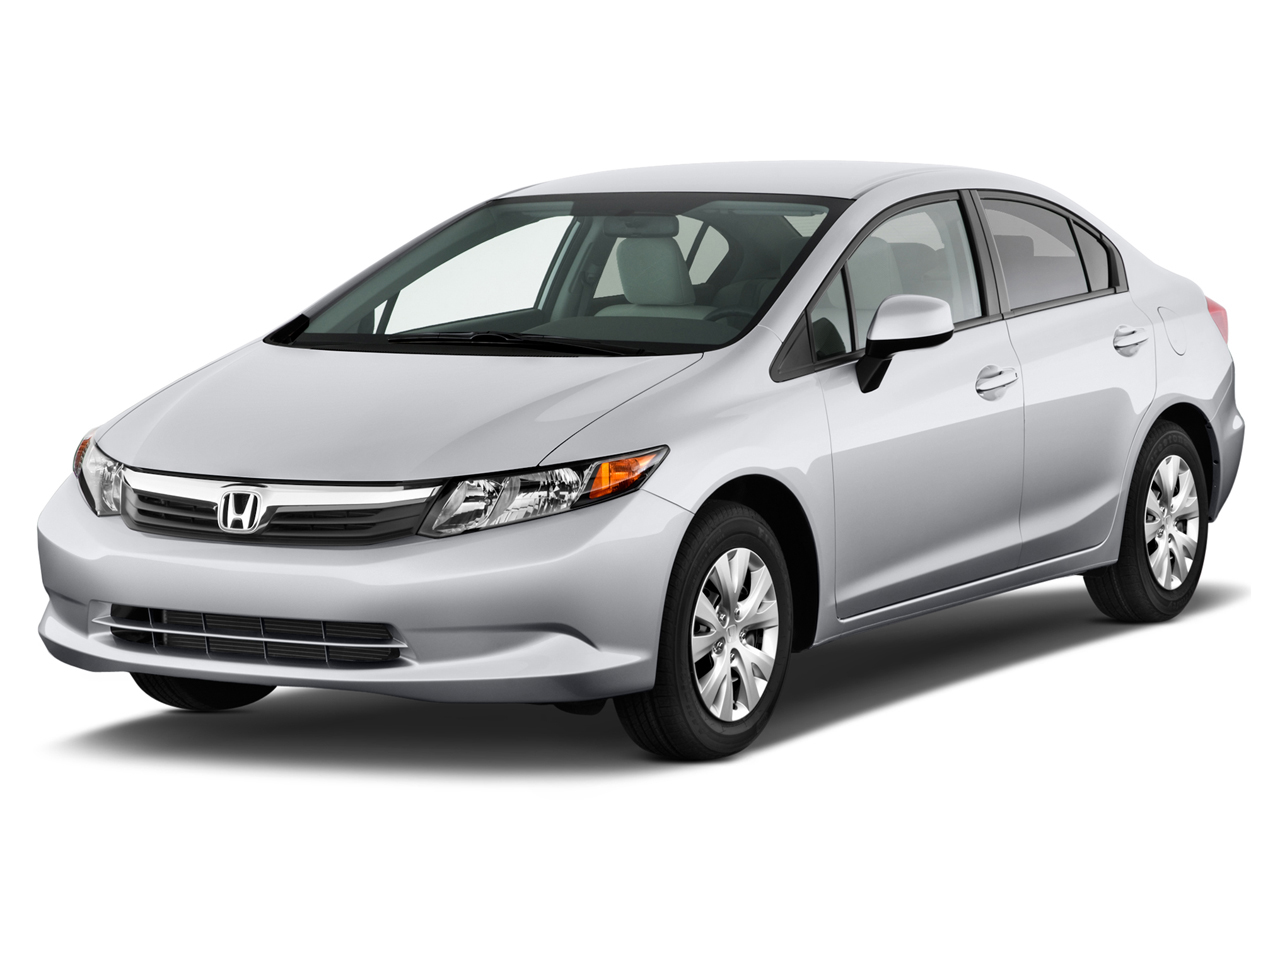 2012 honda civic review ratings specs prices and photos the car connection. Black Bedroom Furniture Sets. Home Design Ideas